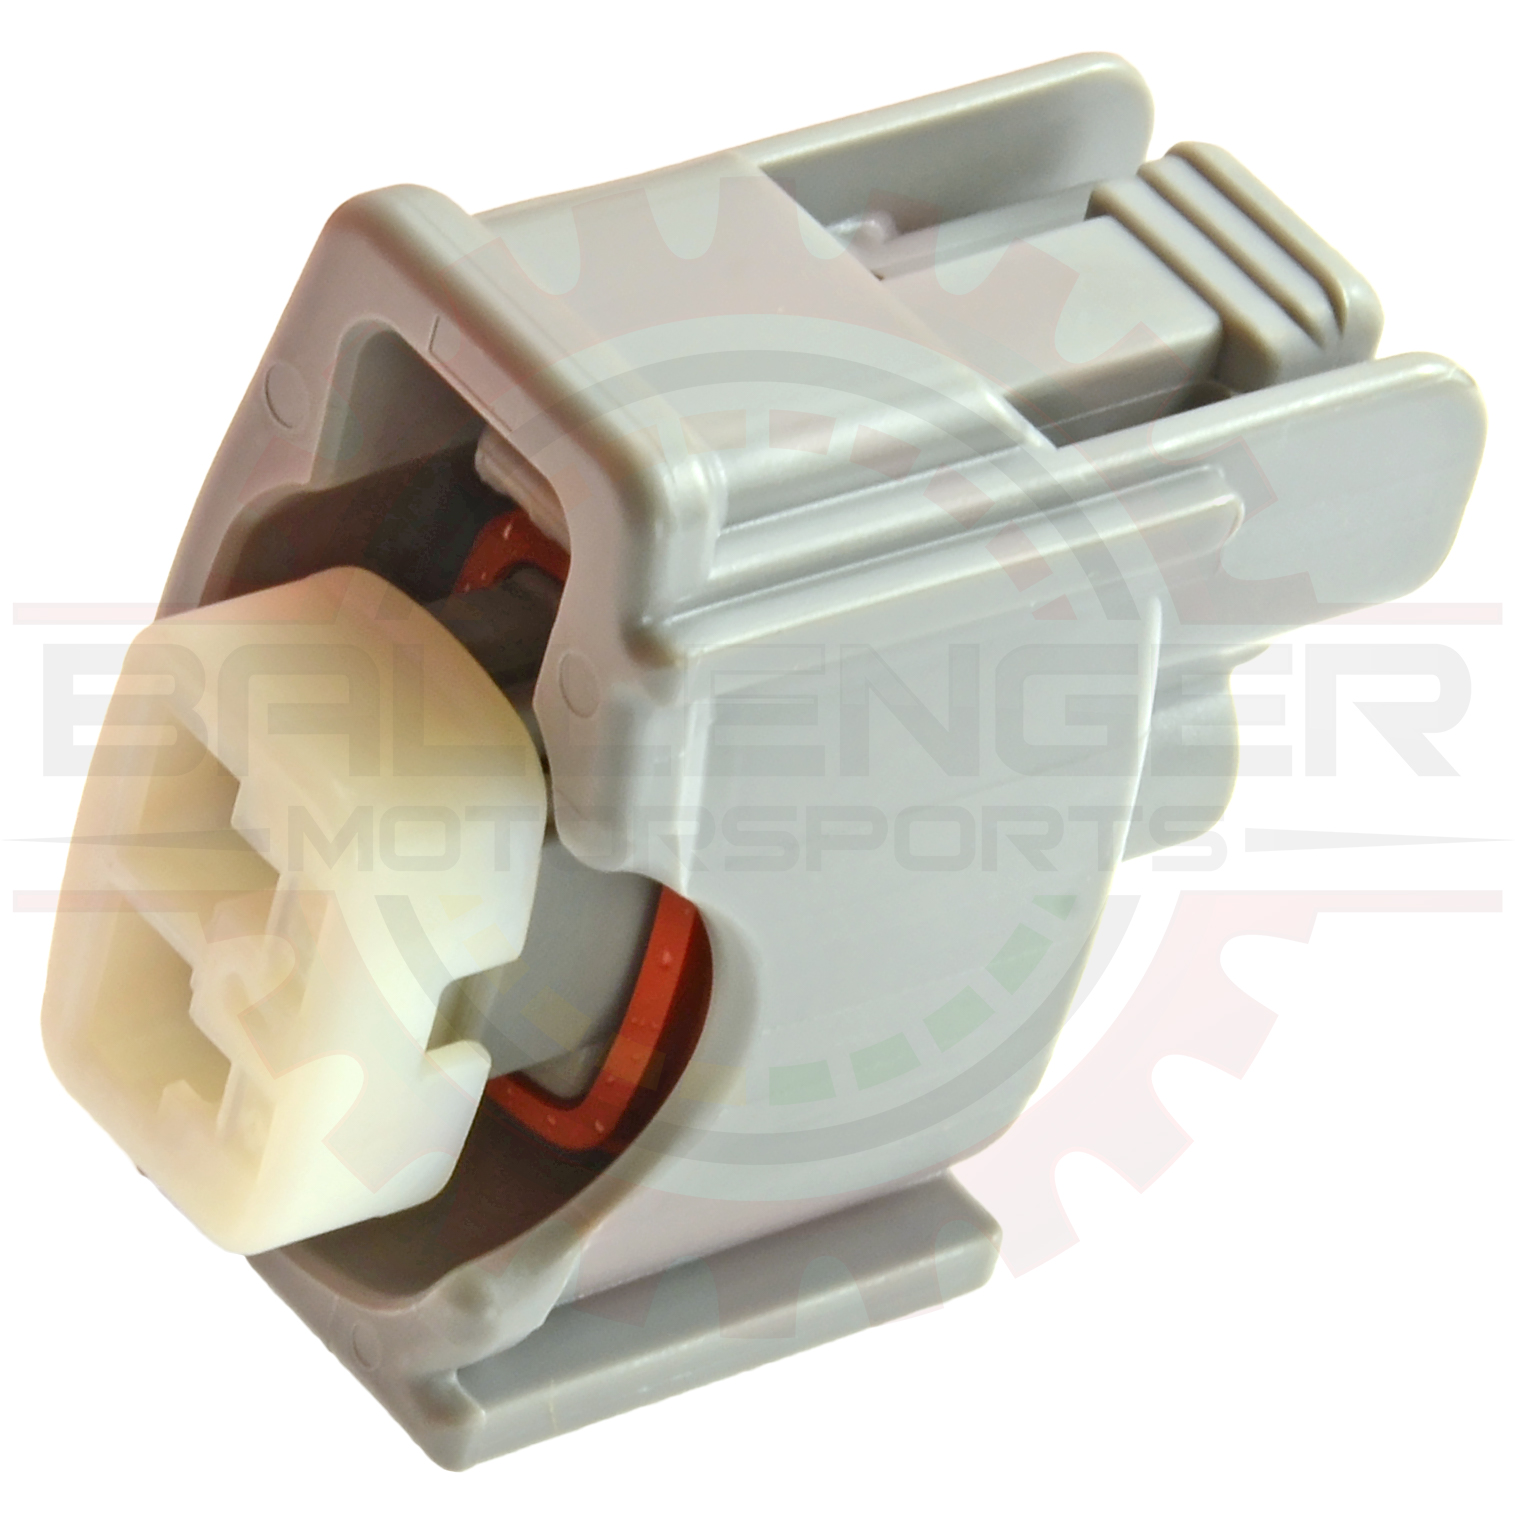 home  shop  connectors harnesses  sumitomo  2 way toyota 2 way toyota style injector connector ignition coil connector pigtail gray 90980